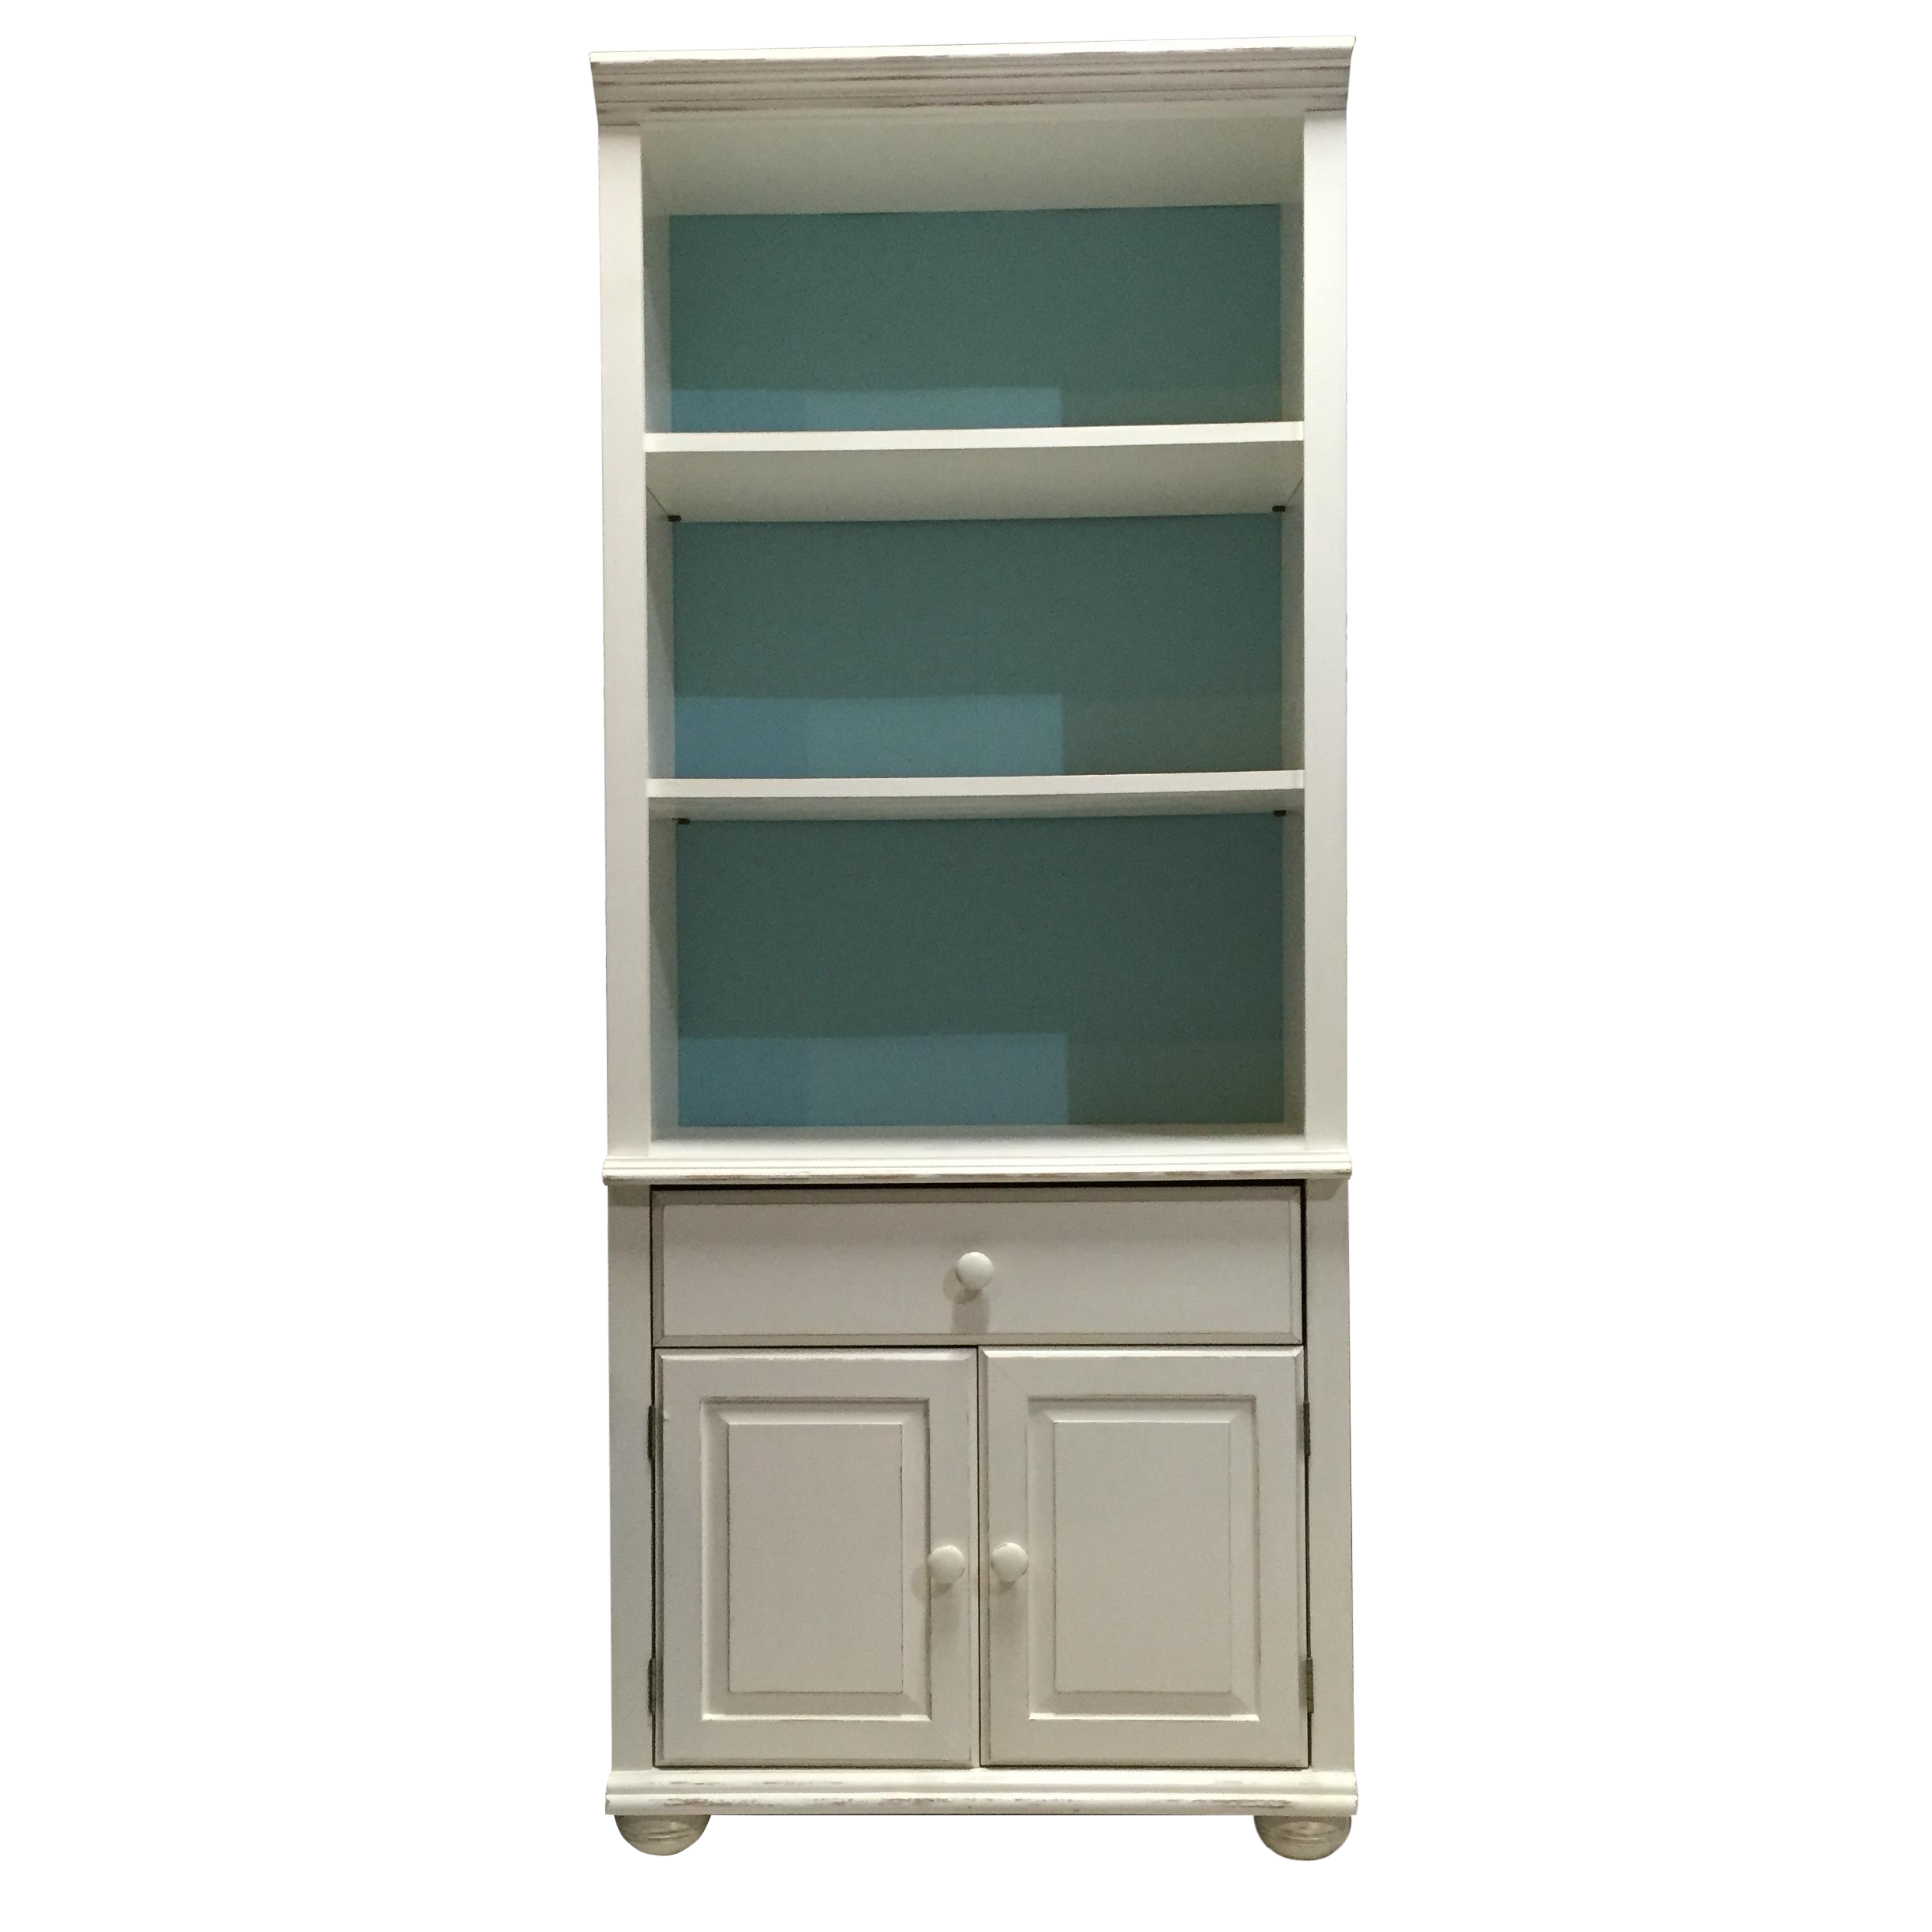 Very Impressive portraiture of Beach Style Bookcase With Cabinet Chairish with #486360 color and 2448x2448 pixels